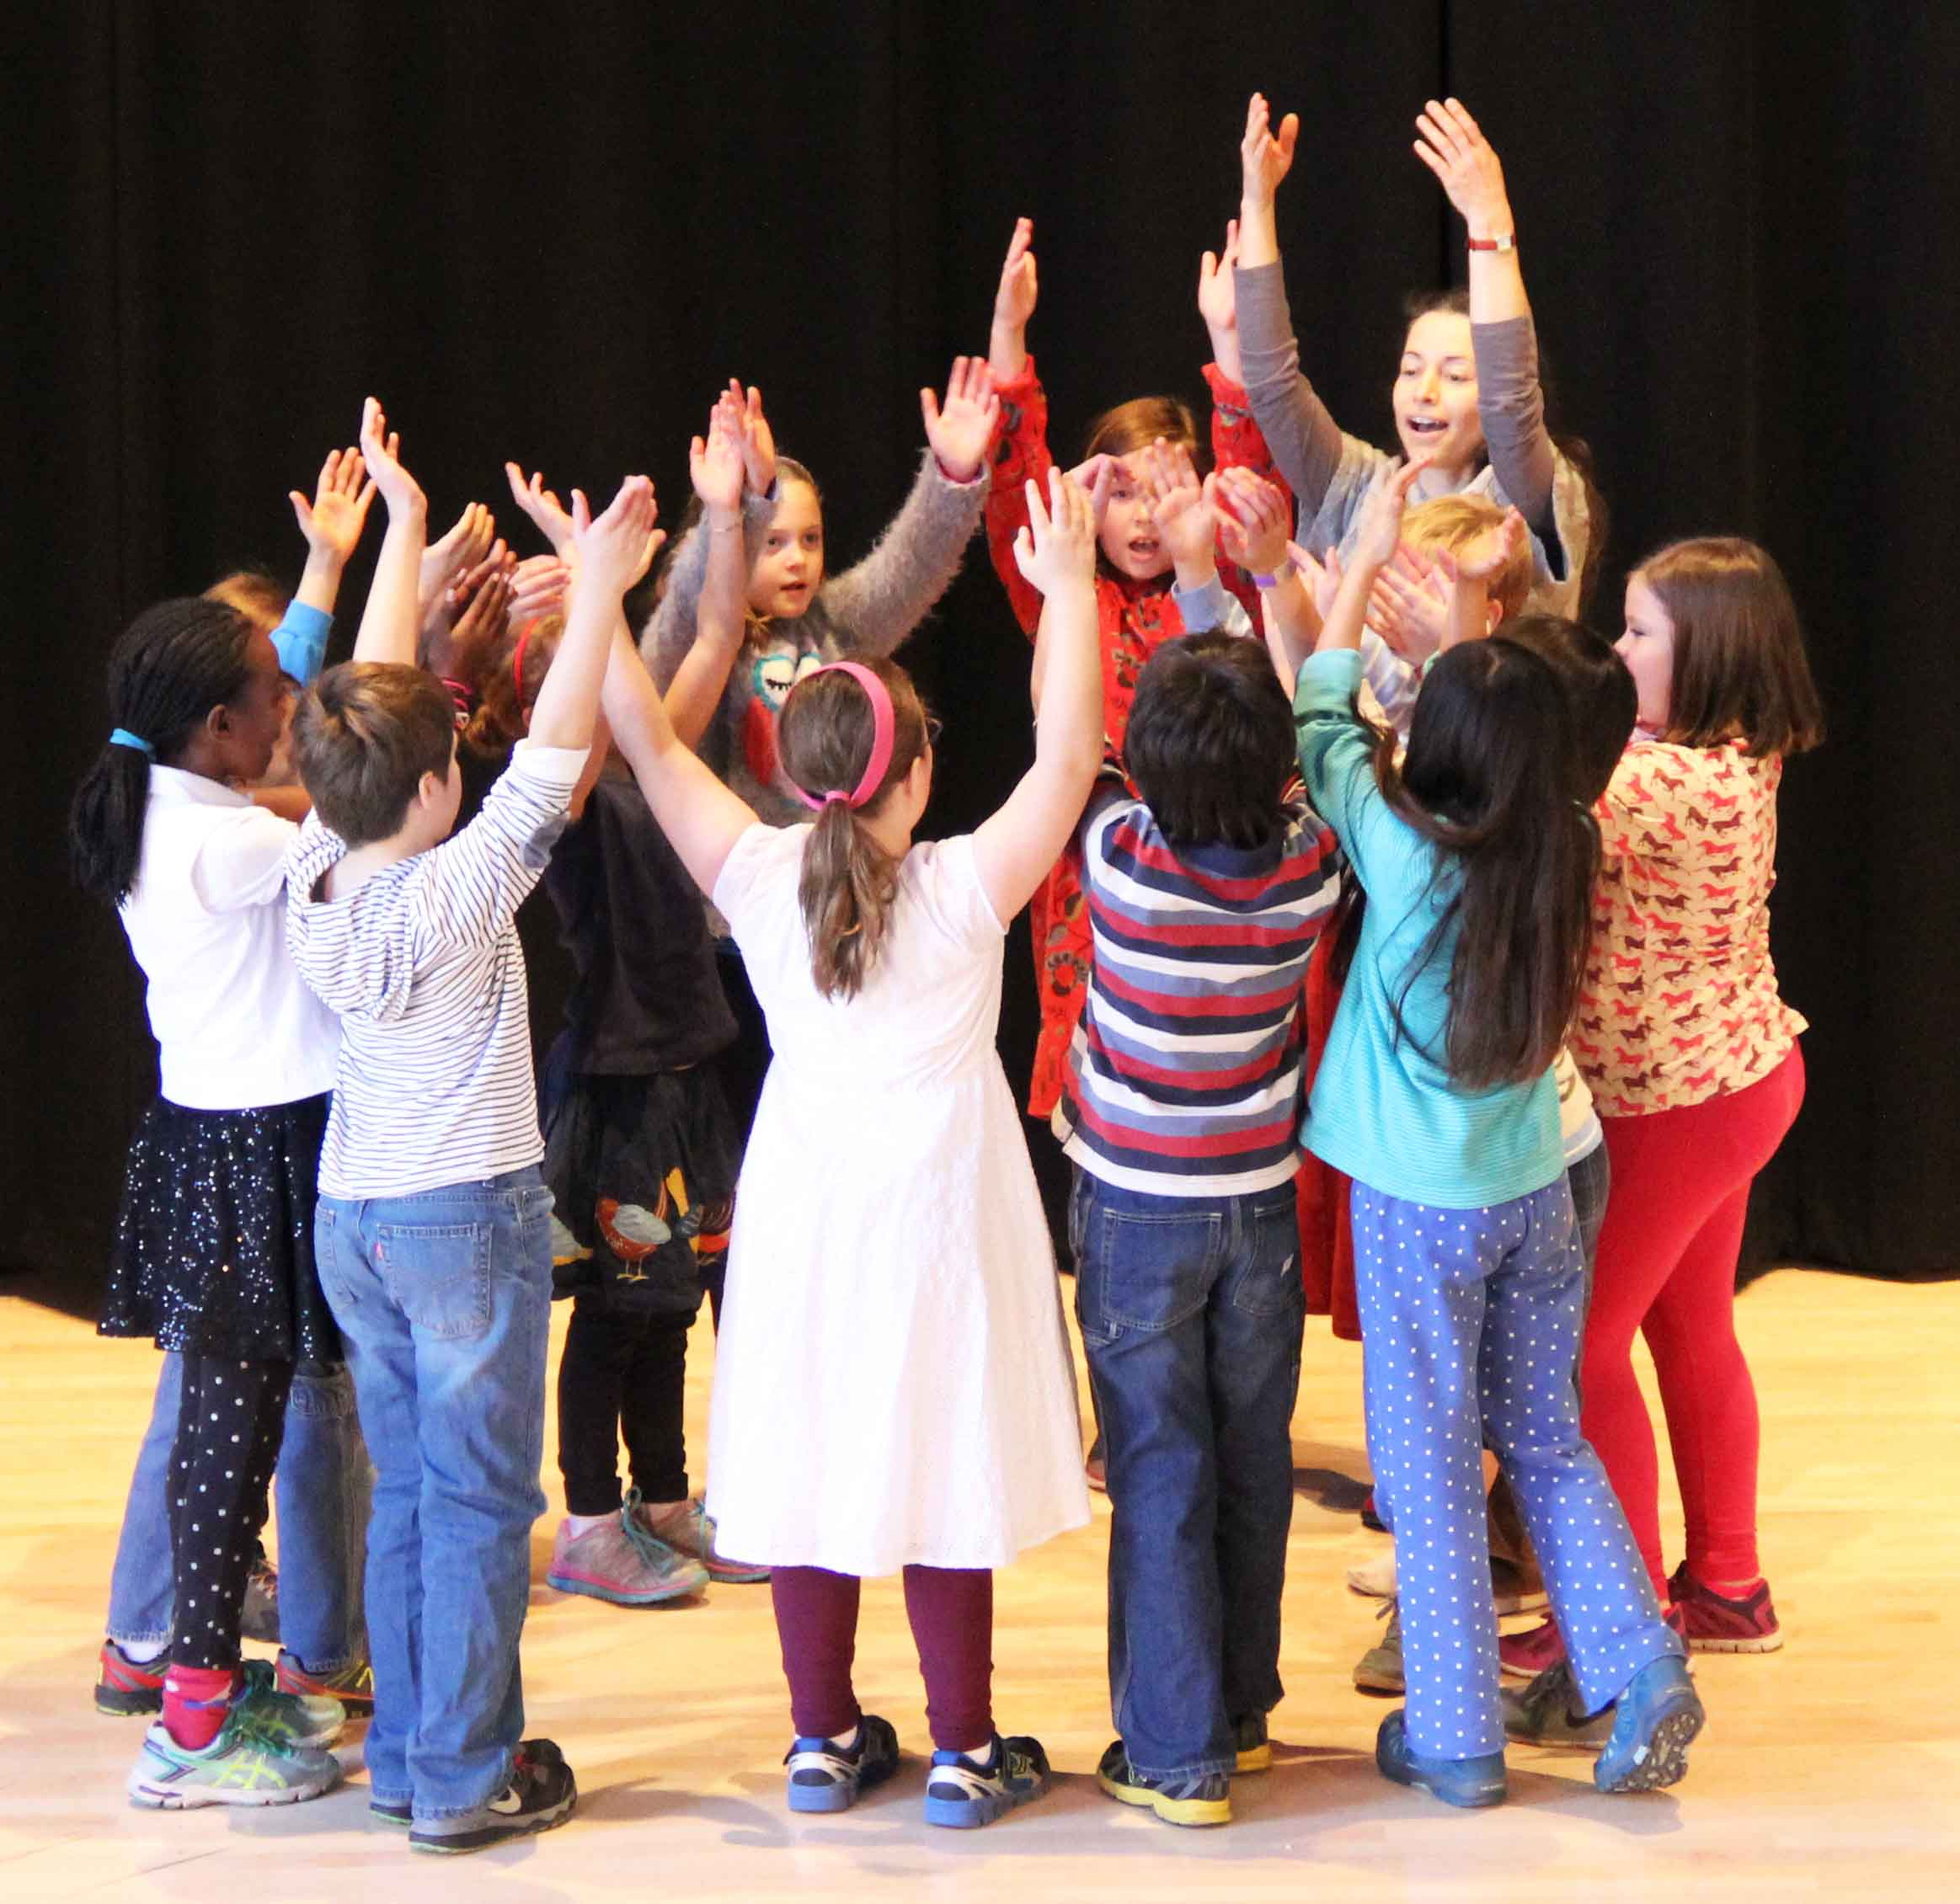 The grace and exuberance of eurythmy, performed with live classical piano music, is another unique hallmark of Waldorf education.